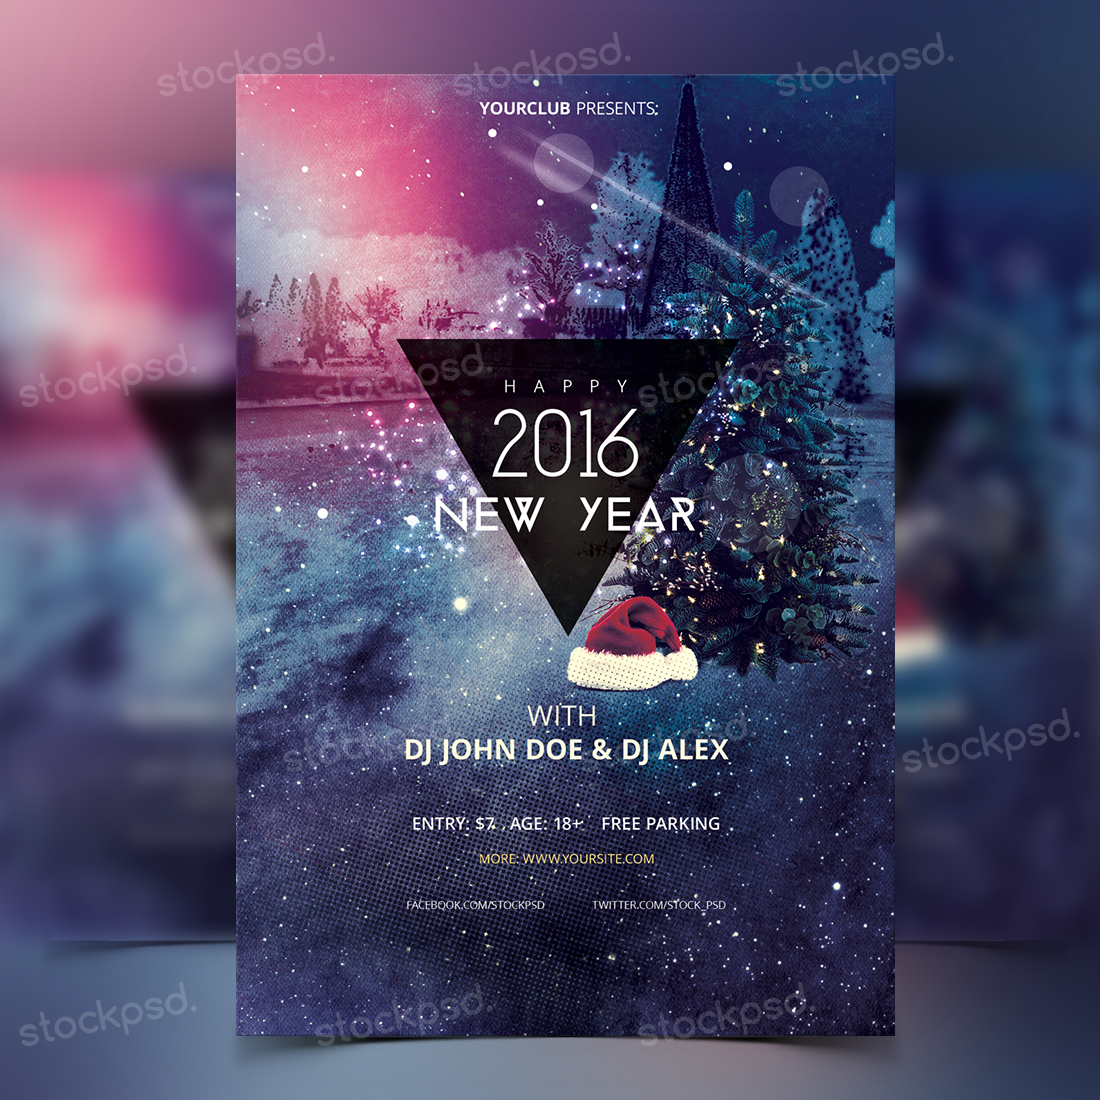 Happy New Year 2016 – Freebie PSD Flyer